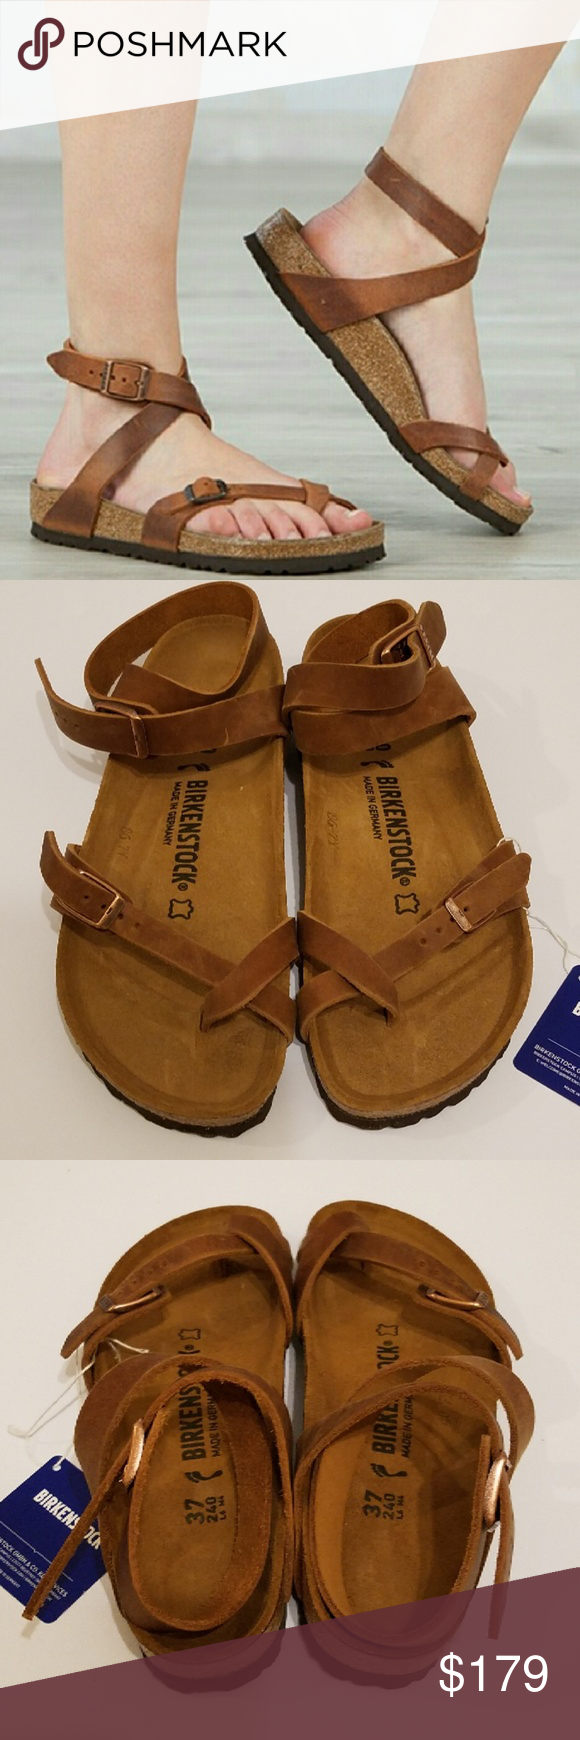 2fc0347b5262 New Birkenstock Yara Antique Brown Sandals 37 Brand New Birkenstock Yara  Antique Brown Leather Sandals. Size 37 Narrow. Very rare color!